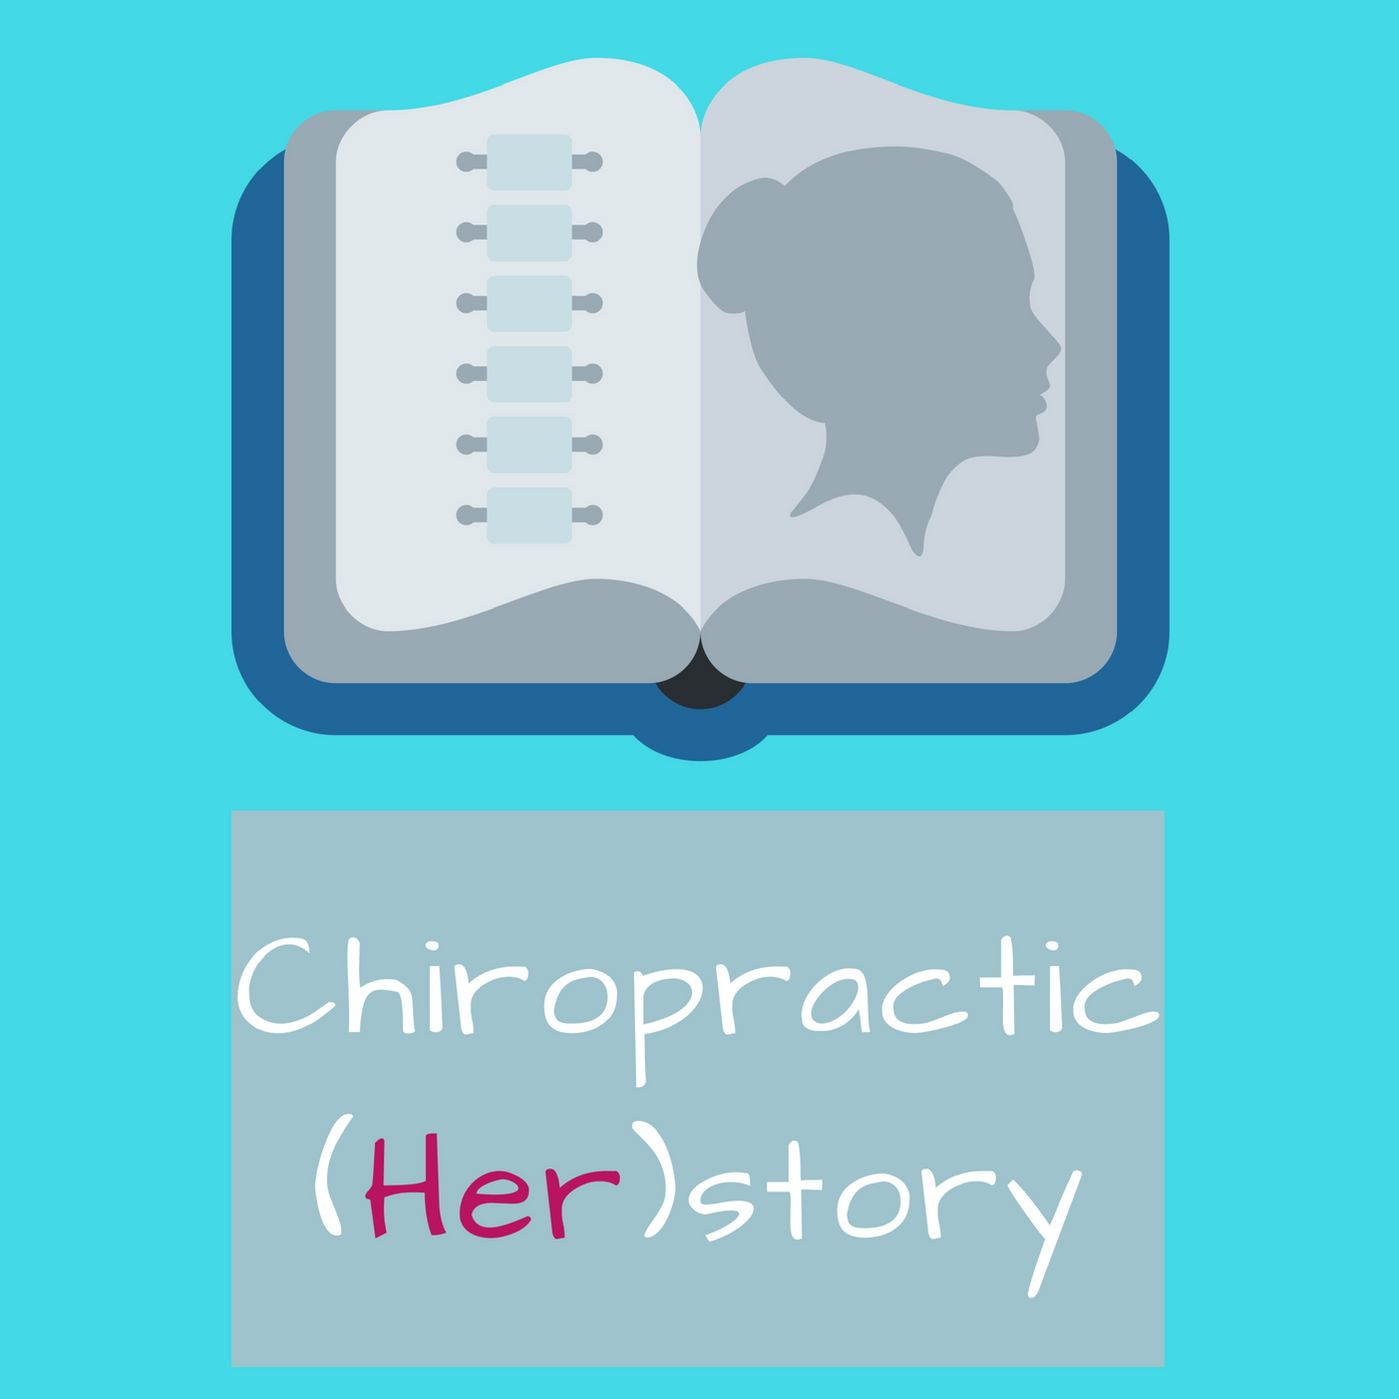 Dr. Sara Whedon- Chiropractic (Her)story Episode 43